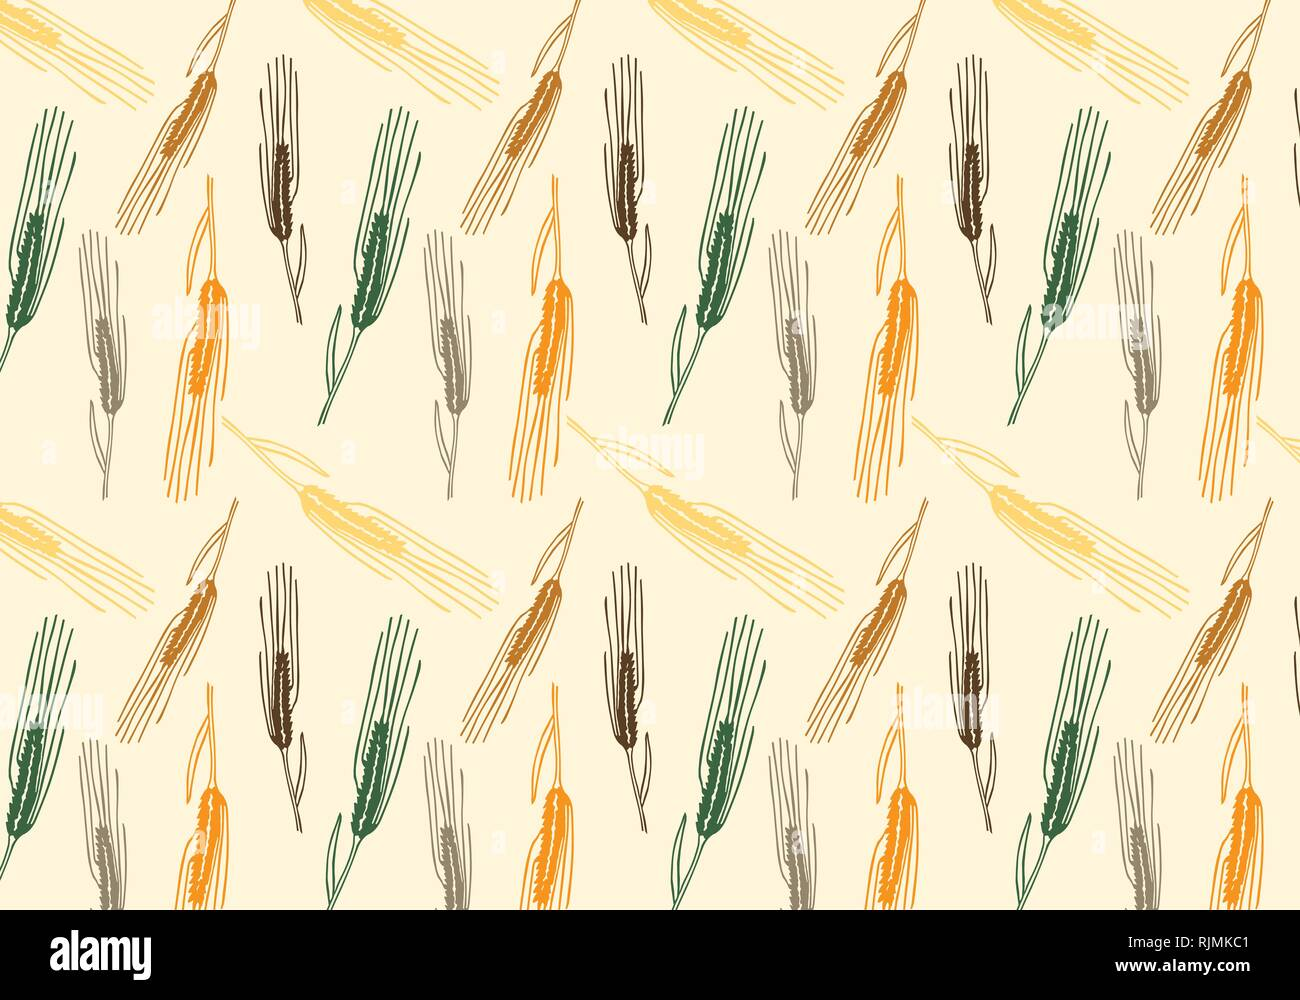 Vector pattern illustration hand drawn spring wheat in orange,green, brown and gray colors palette. Malt beer background. Autumn harvest. - Stock Vector